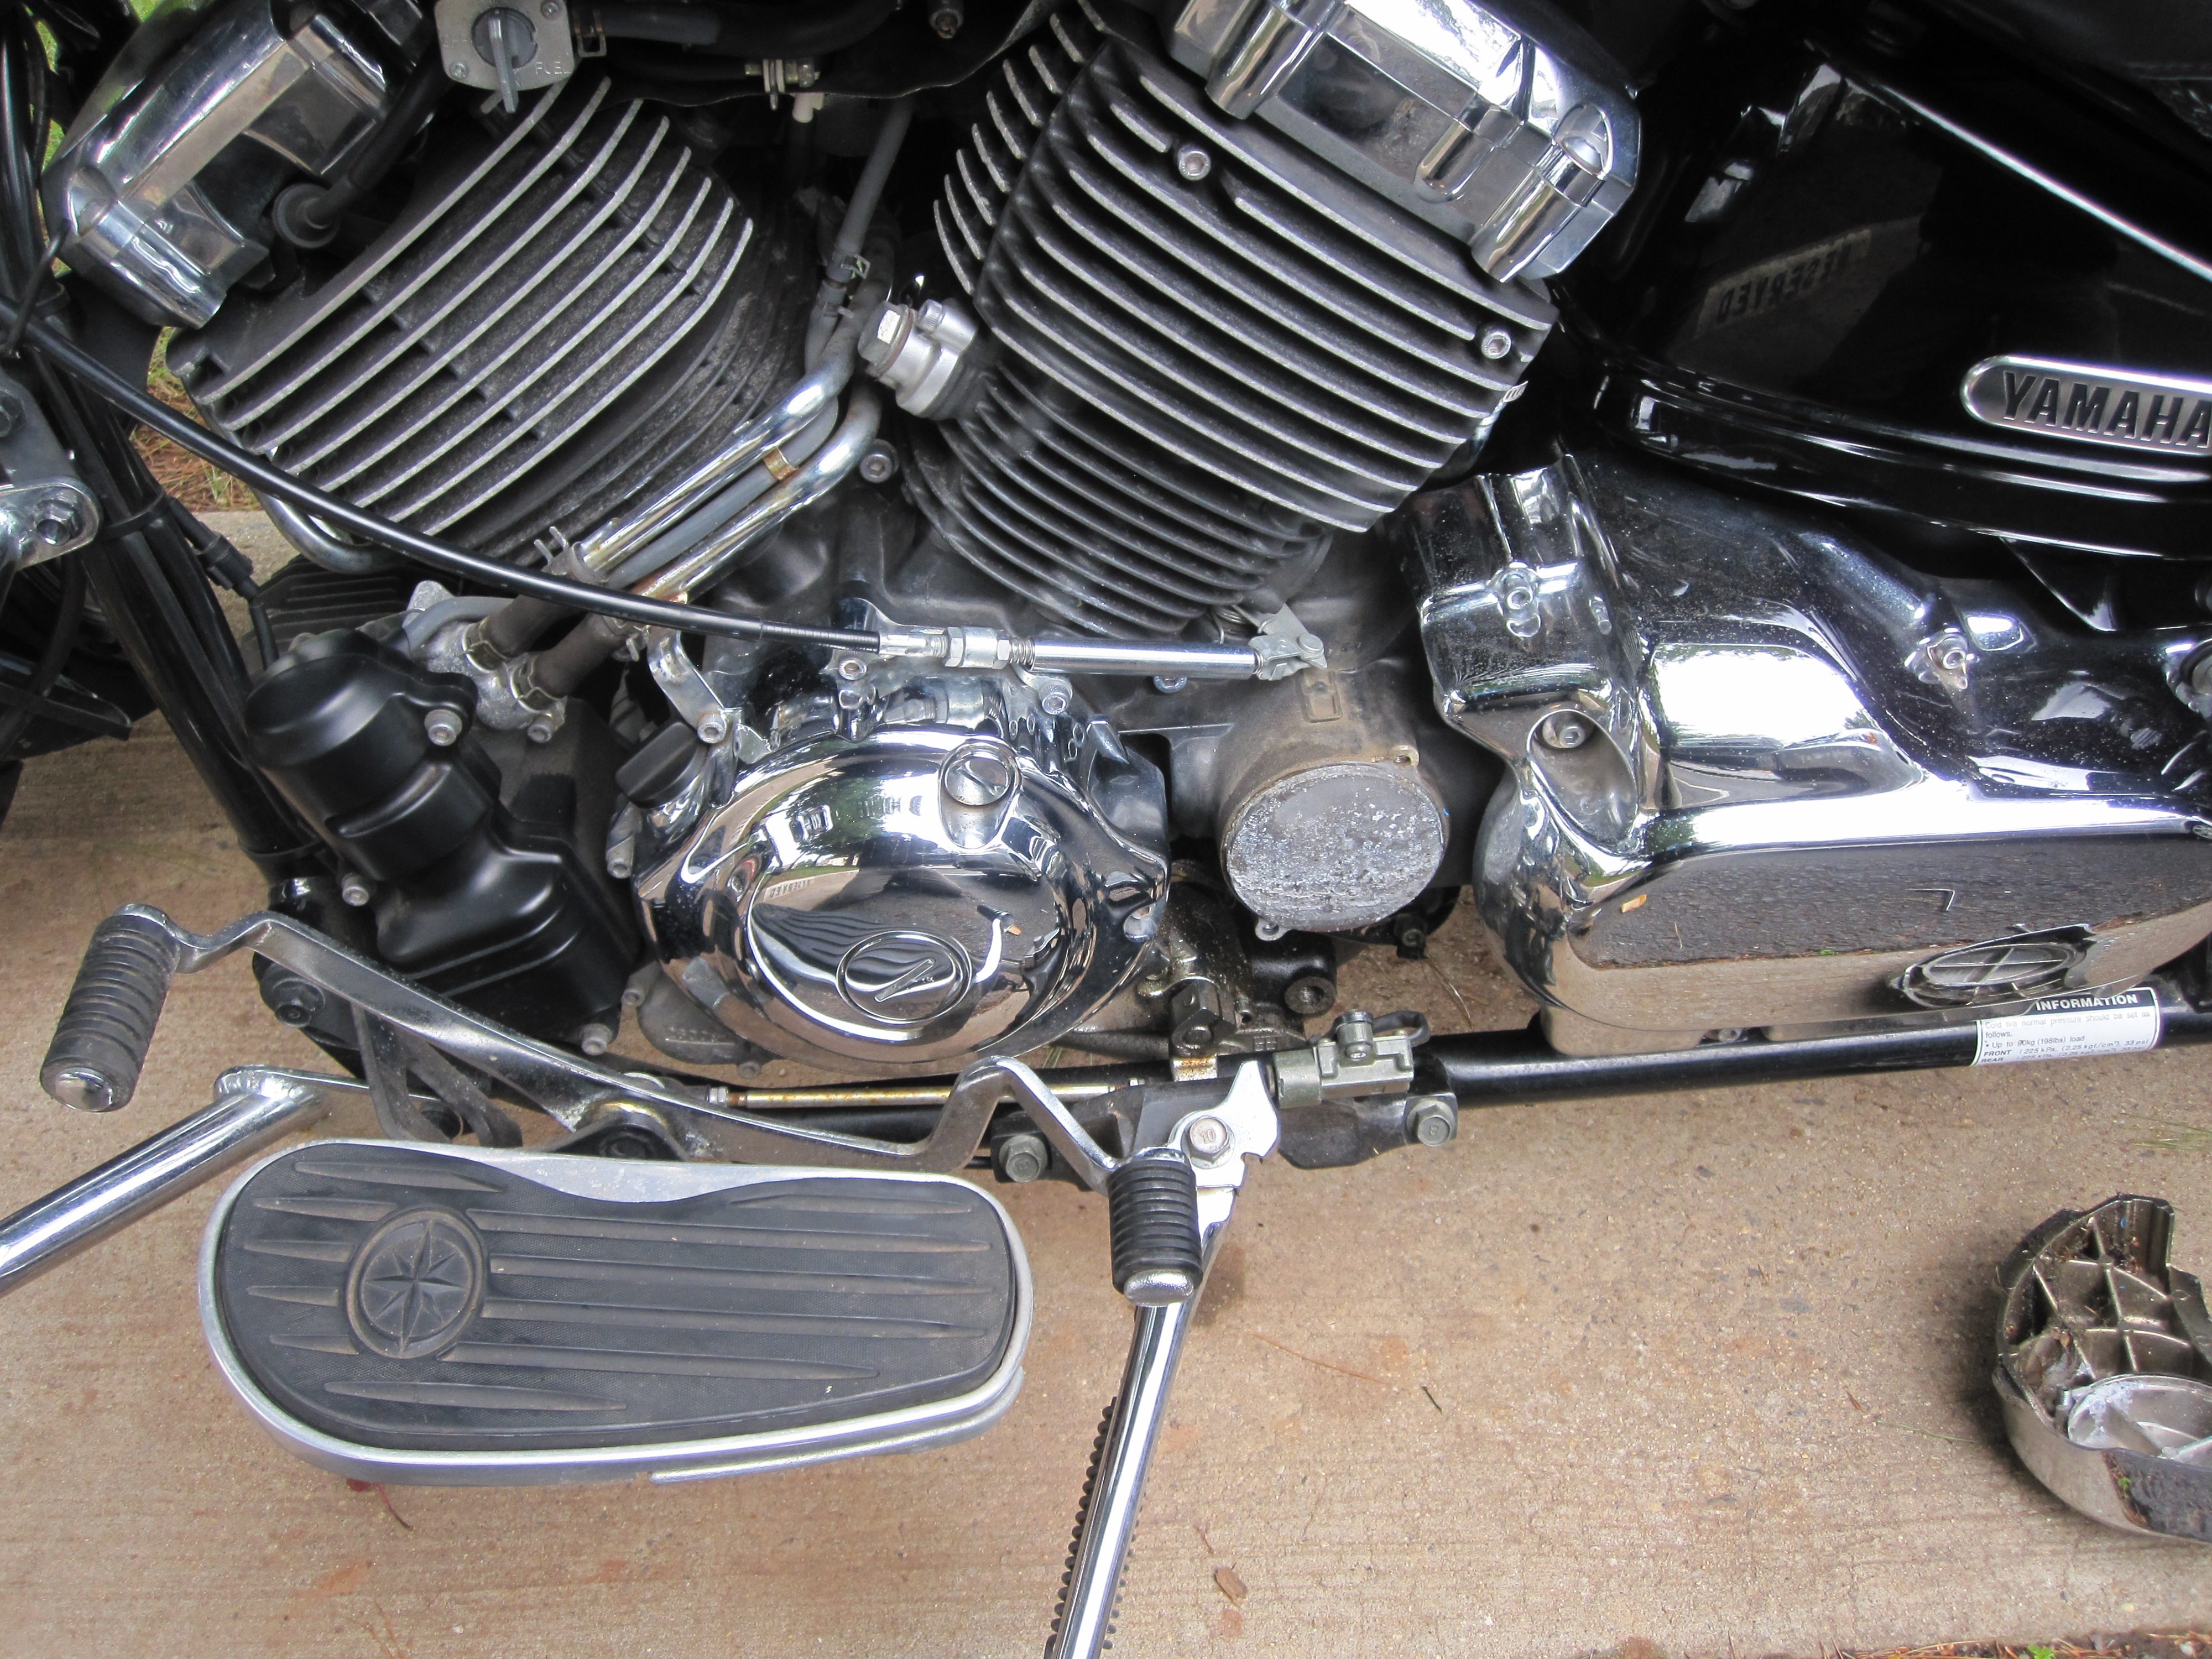 Fuse Box Yamaha V Star 650 Schematic Diagrams Accessory Motorcycle Road Diagram Rugged Wiring Harness Loom Custom Accessories